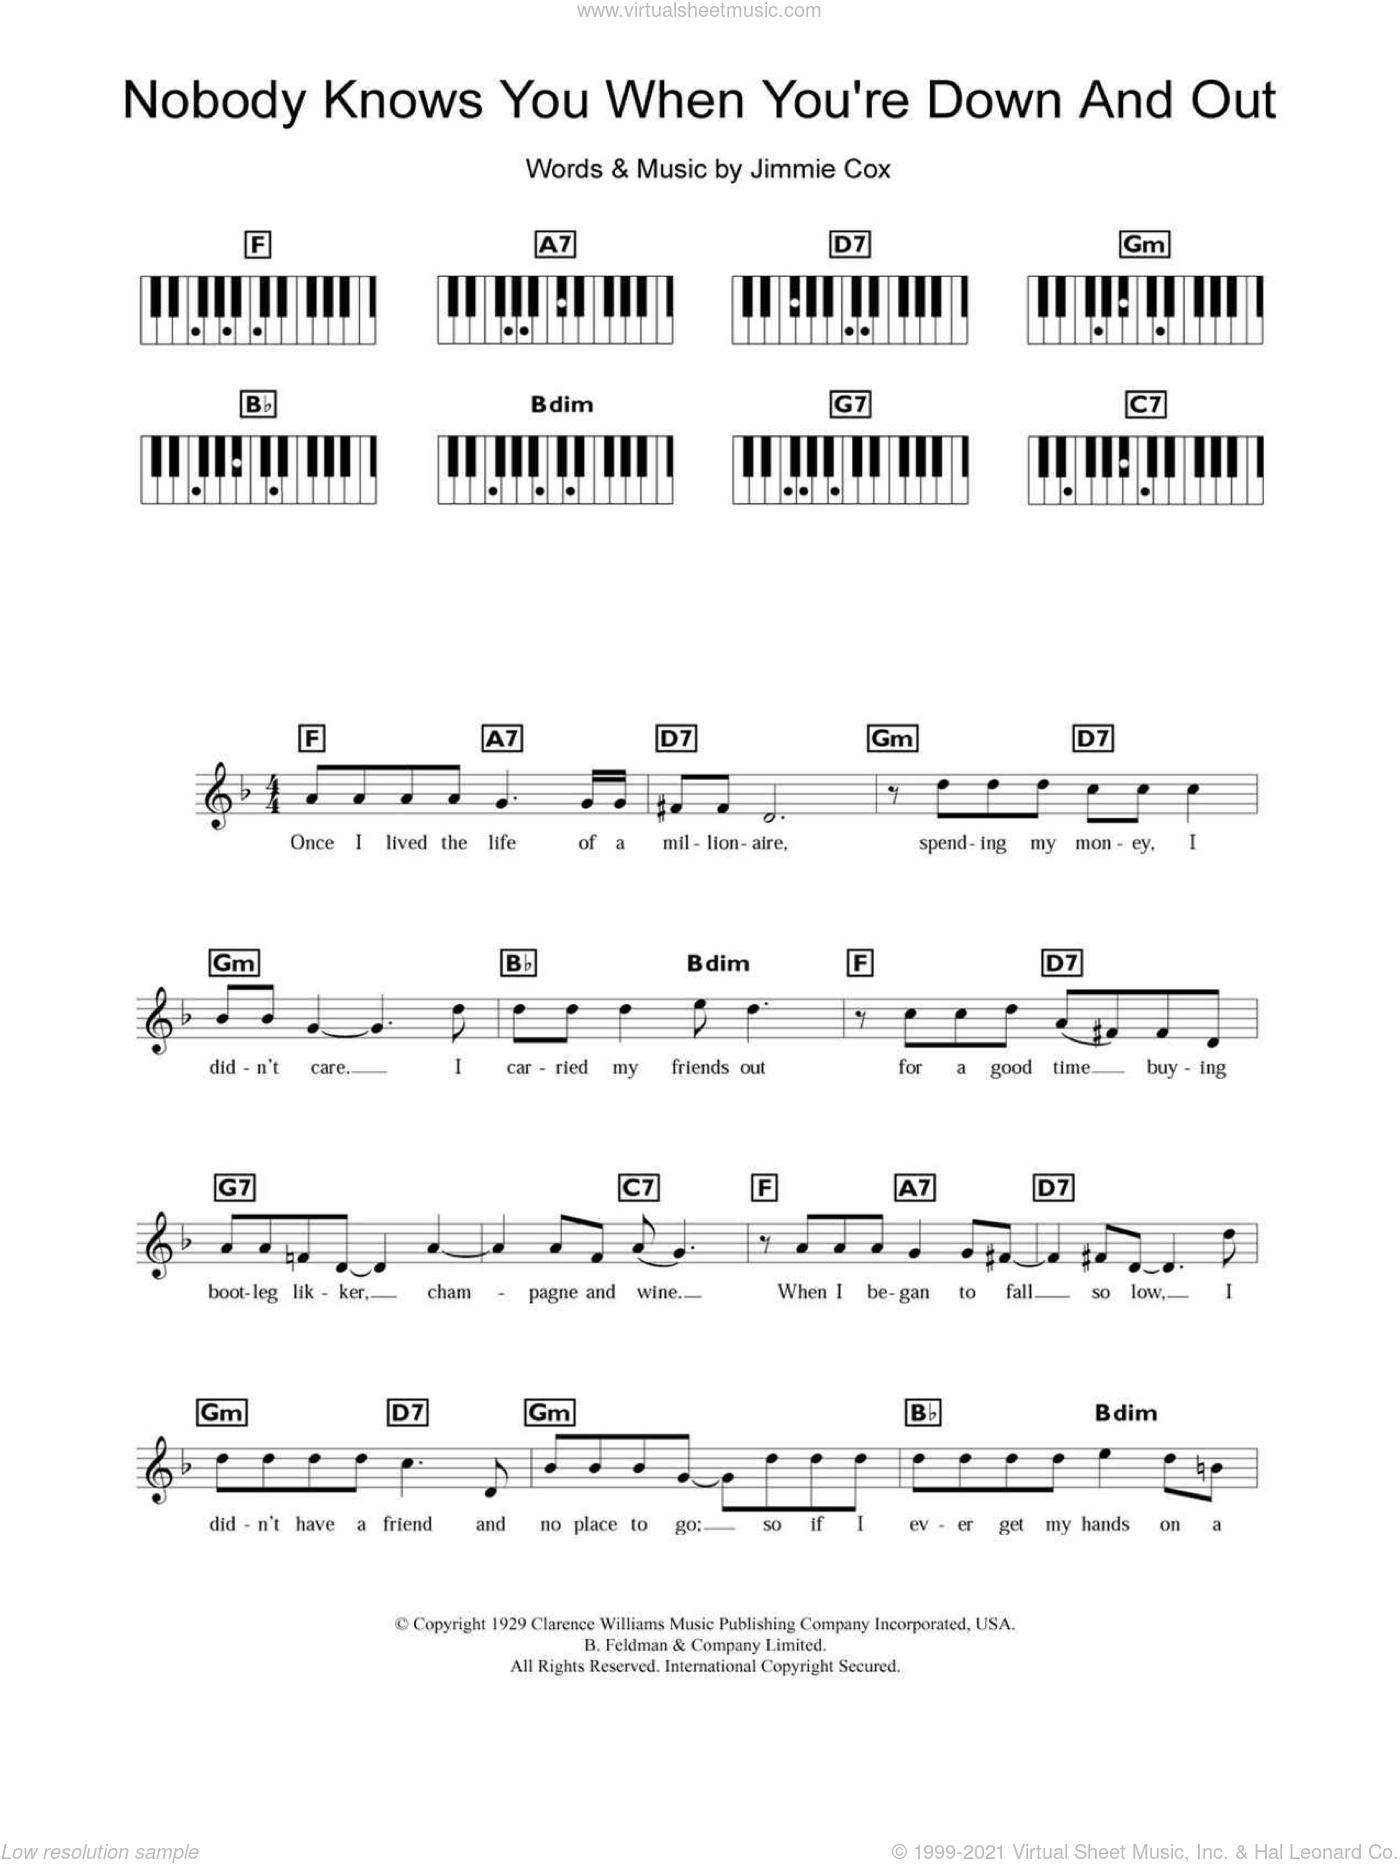 Nobody Knows You When You're Down And Out sheet music for piano solo (chords, lyrics, melody) by Jimmie Cox. Score Image Preview.